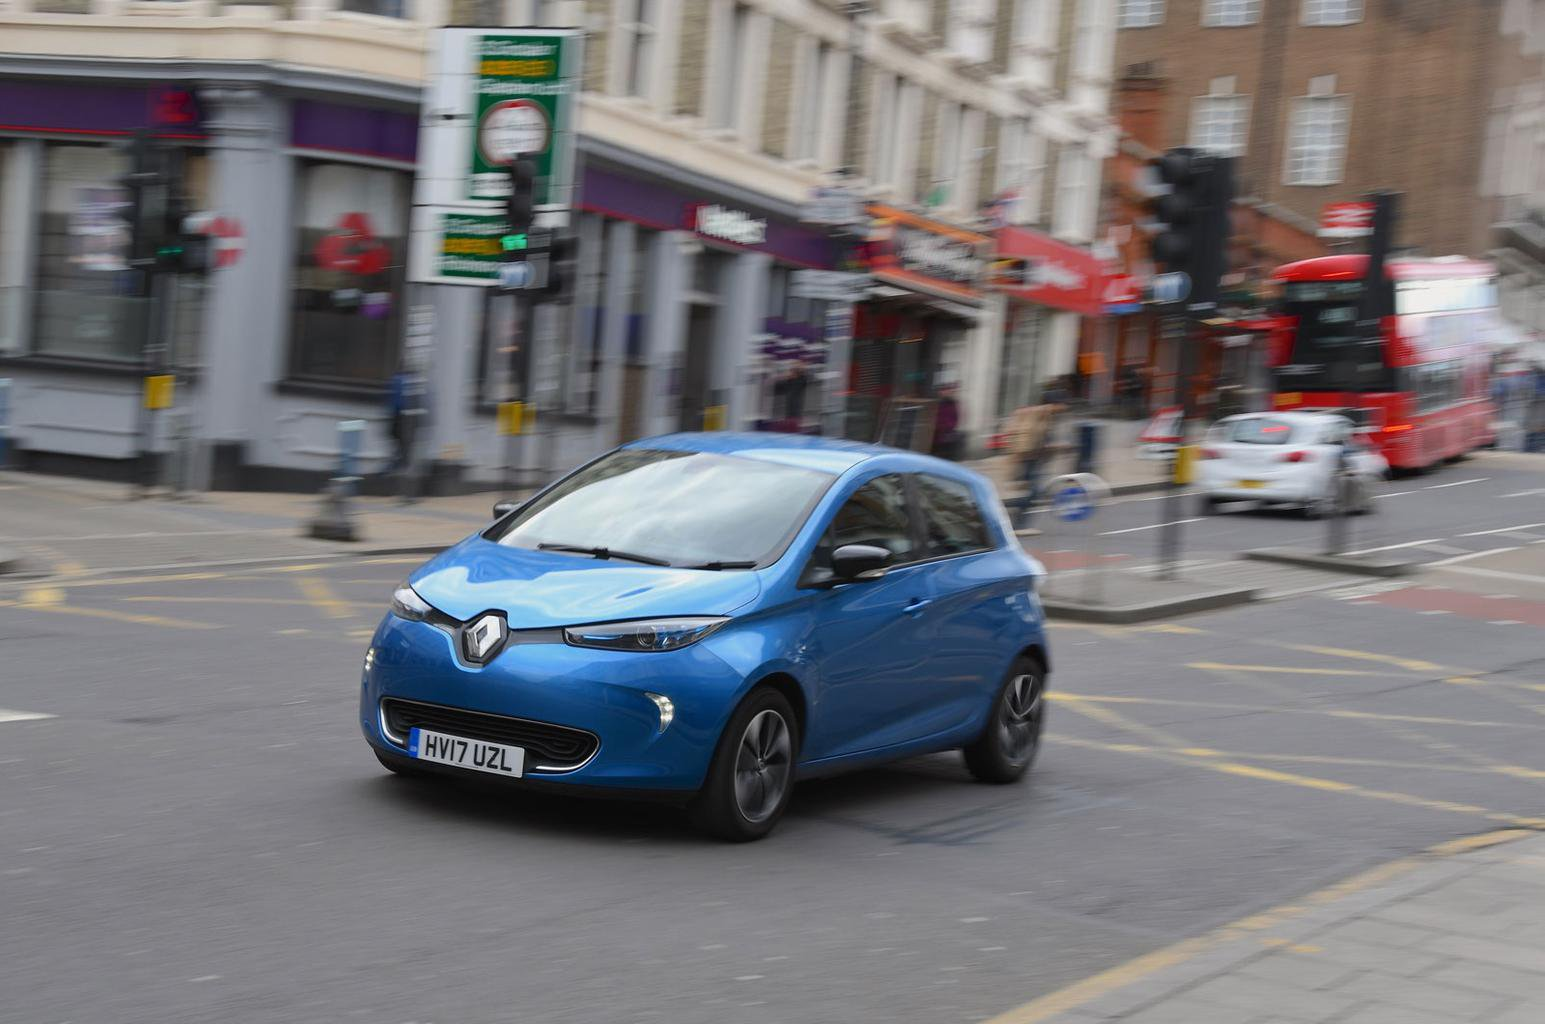 Electric vehicle charging – what does it really cost?